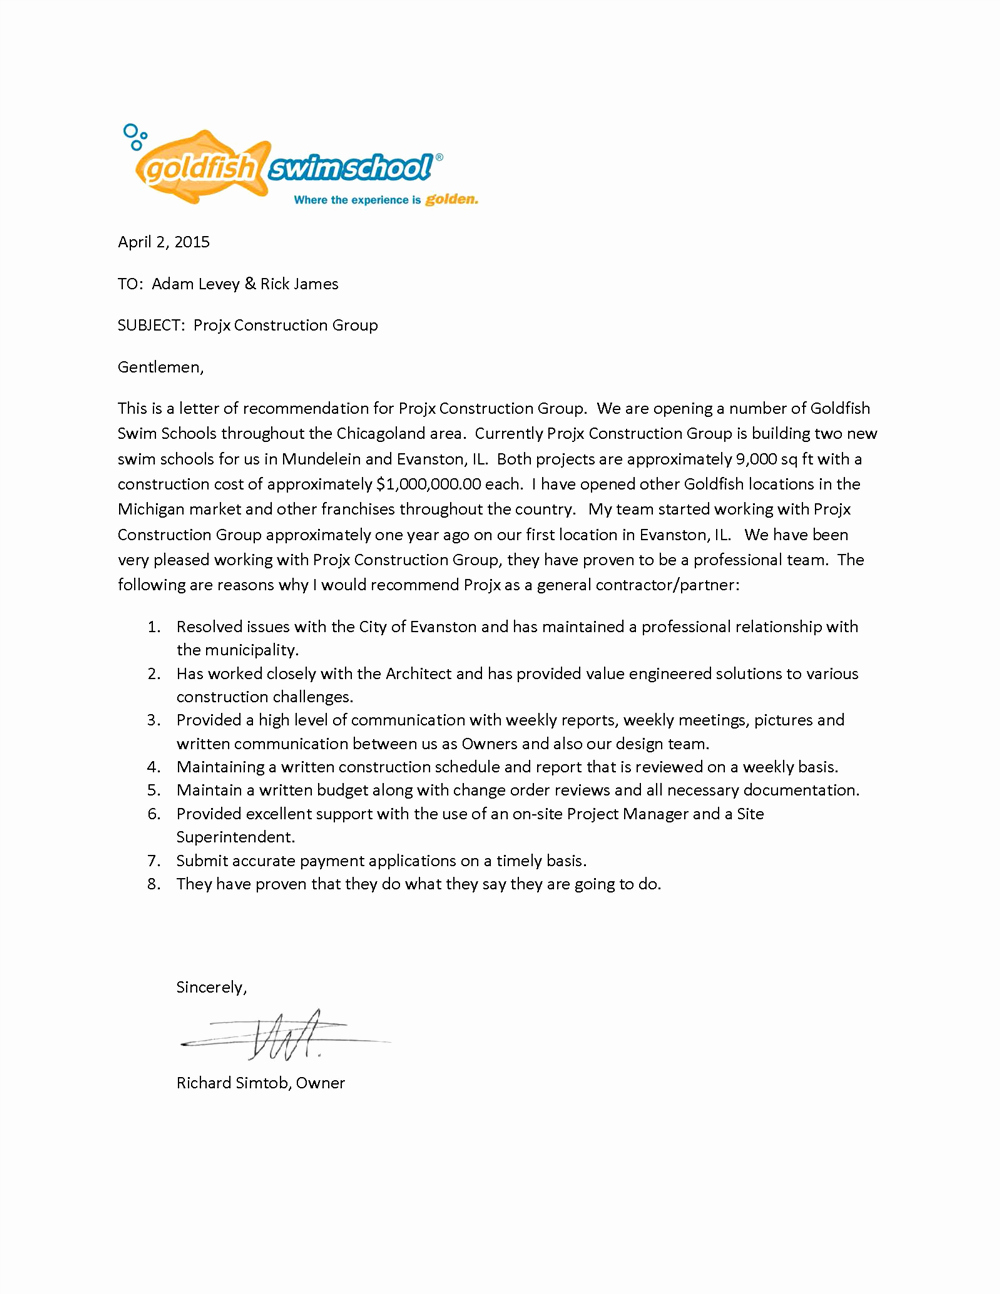 Letter Of Recommendation for Contractor Beautiful Projx Reviews